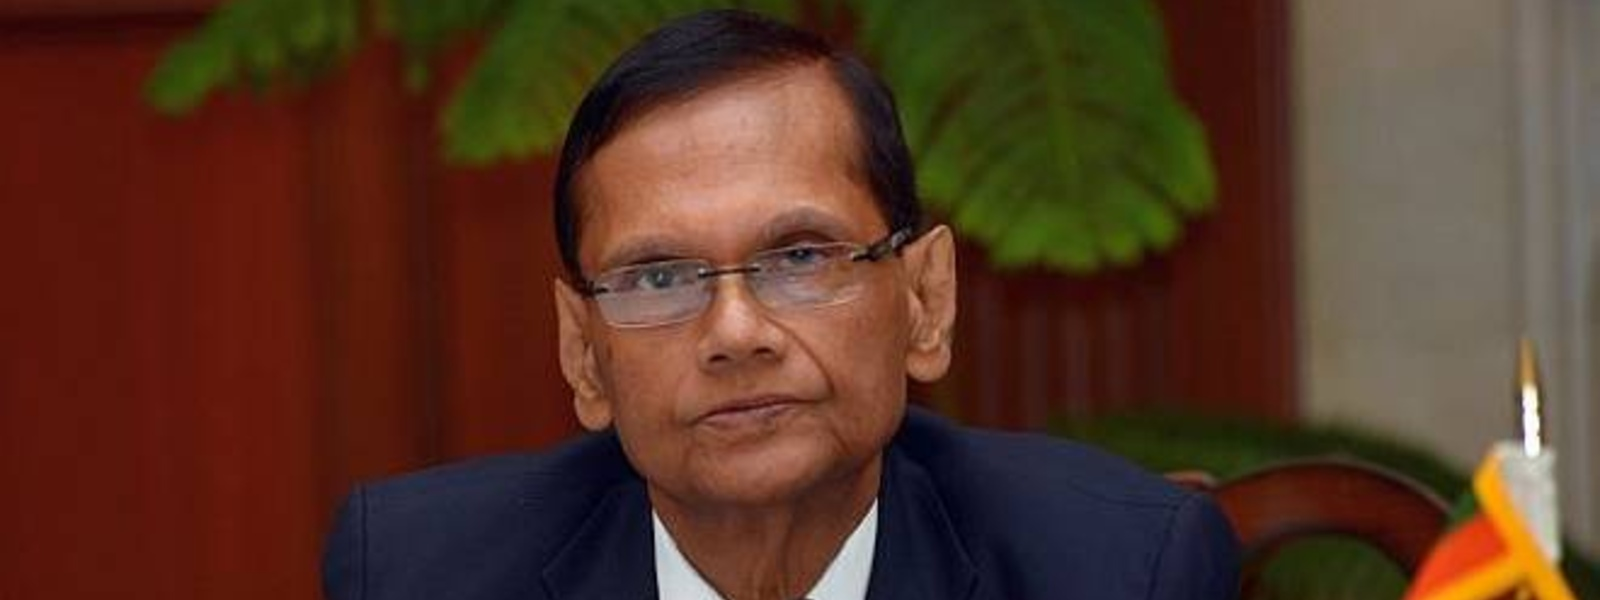 No discussion regarding Deputy PM post; Minister G. L. Peiris